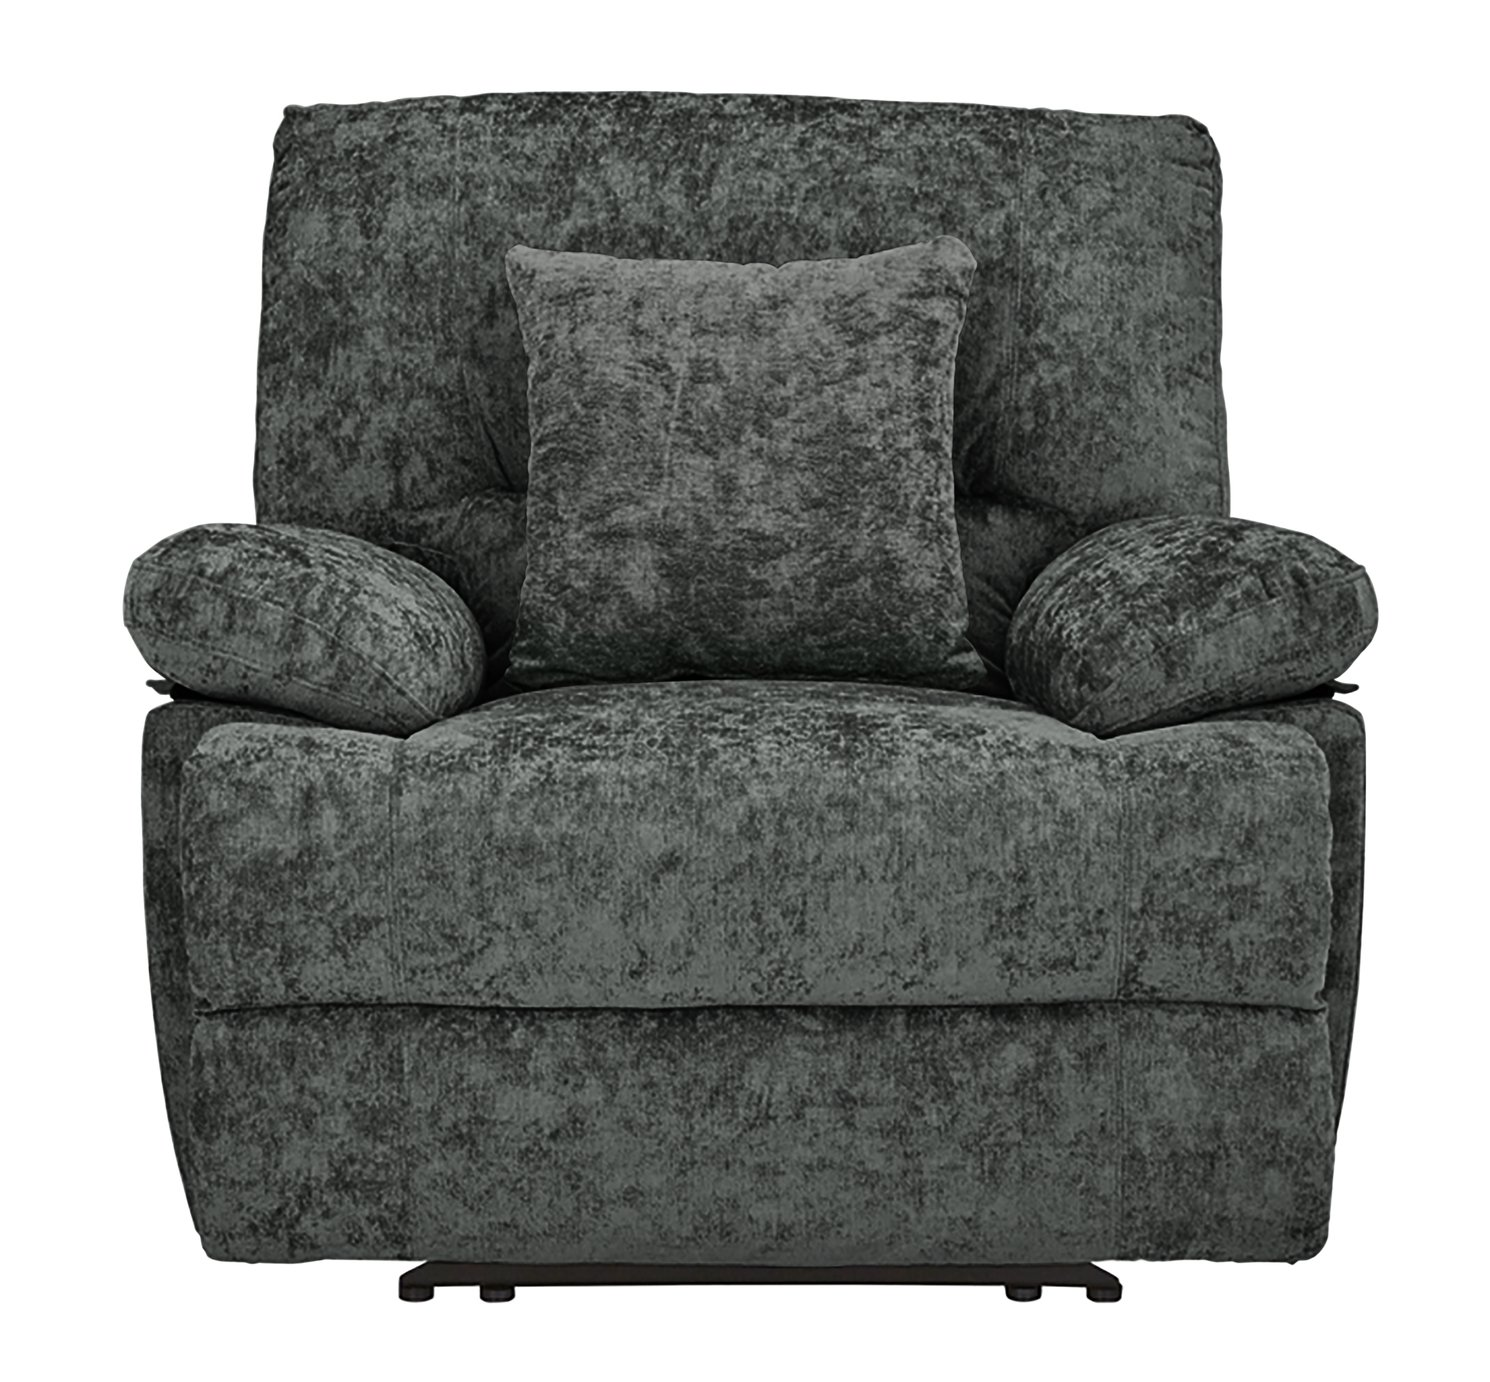 Argos Home Carmilla Fabric Manual Recliner Chair - Charcoal